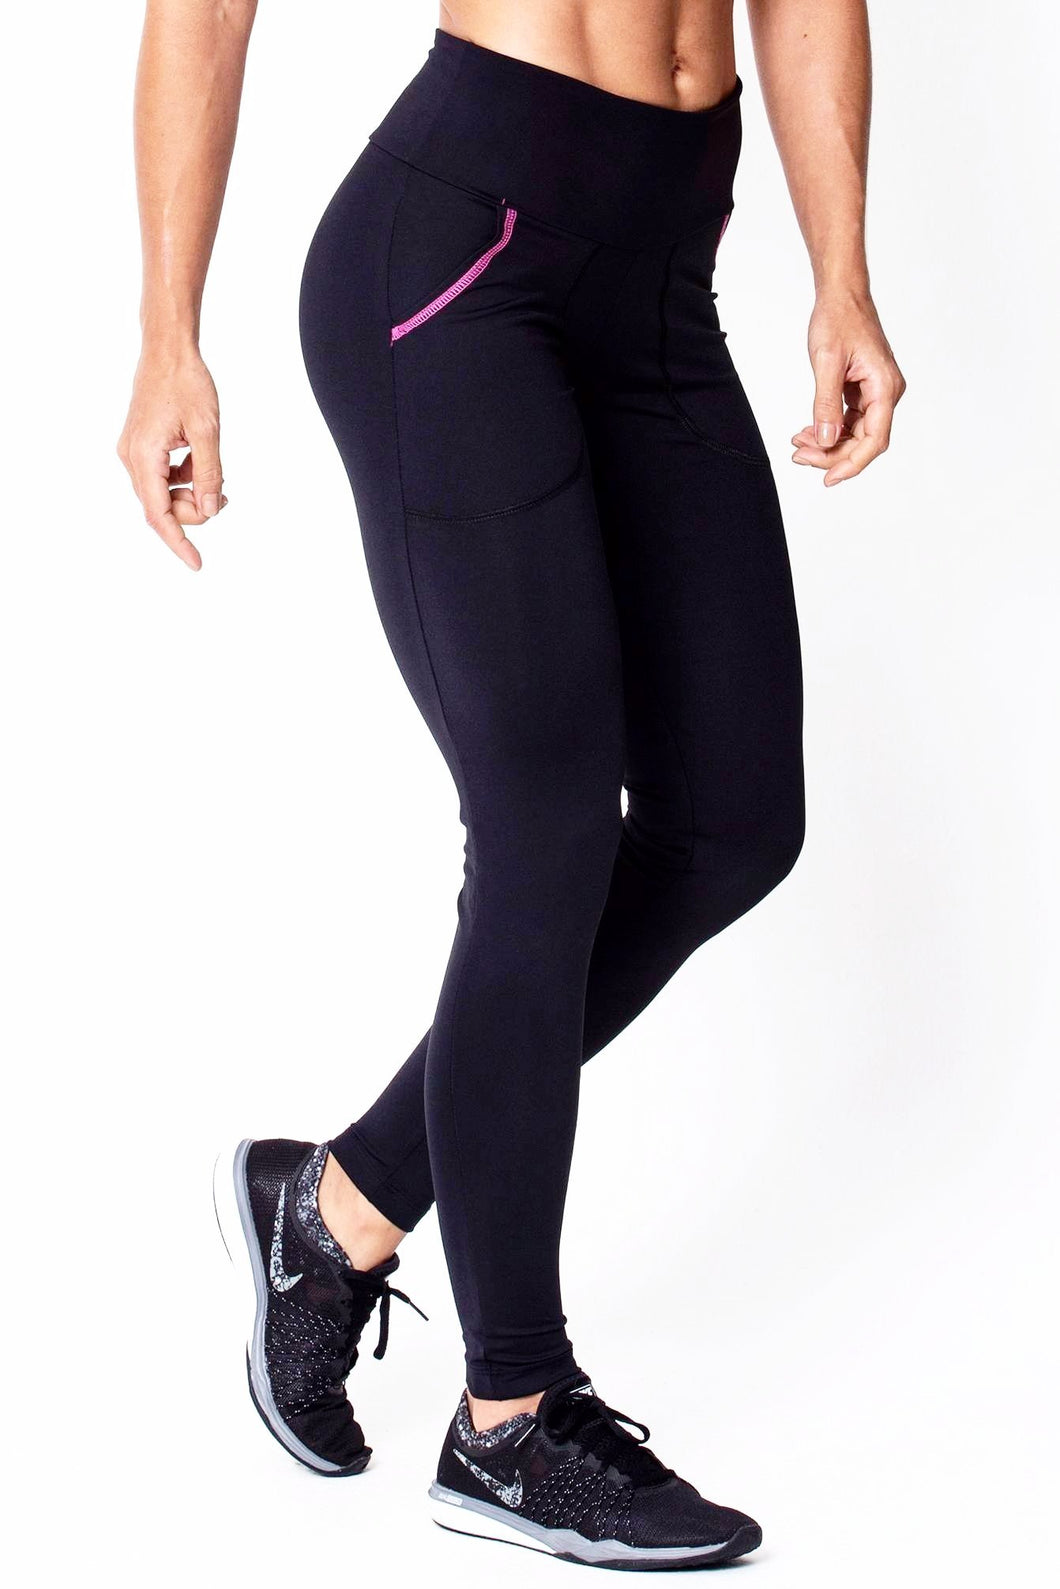 Black With Pink Pocket Leggings